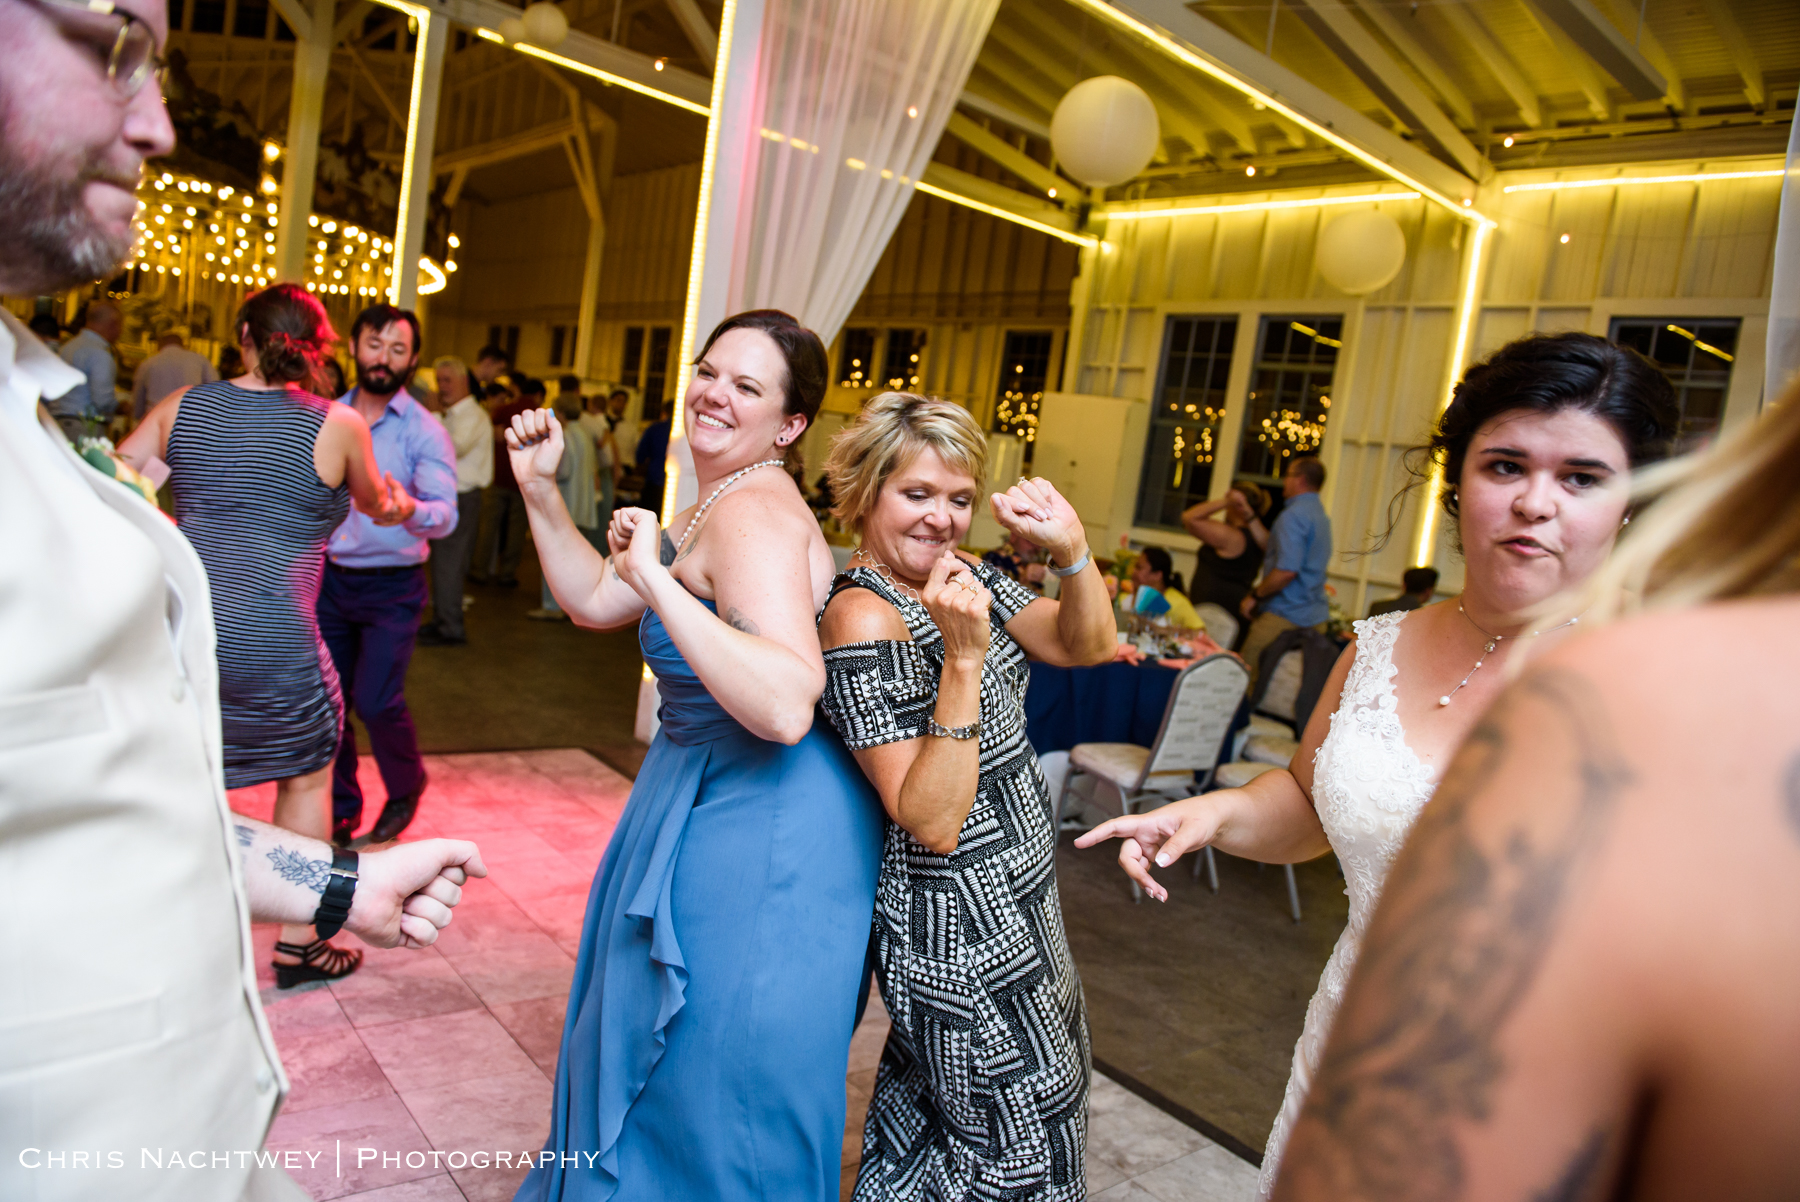 photos-wedding-lighthouse-point-park-carousel-new-haven-chris-nachtwey-photography-2019-62.jpg